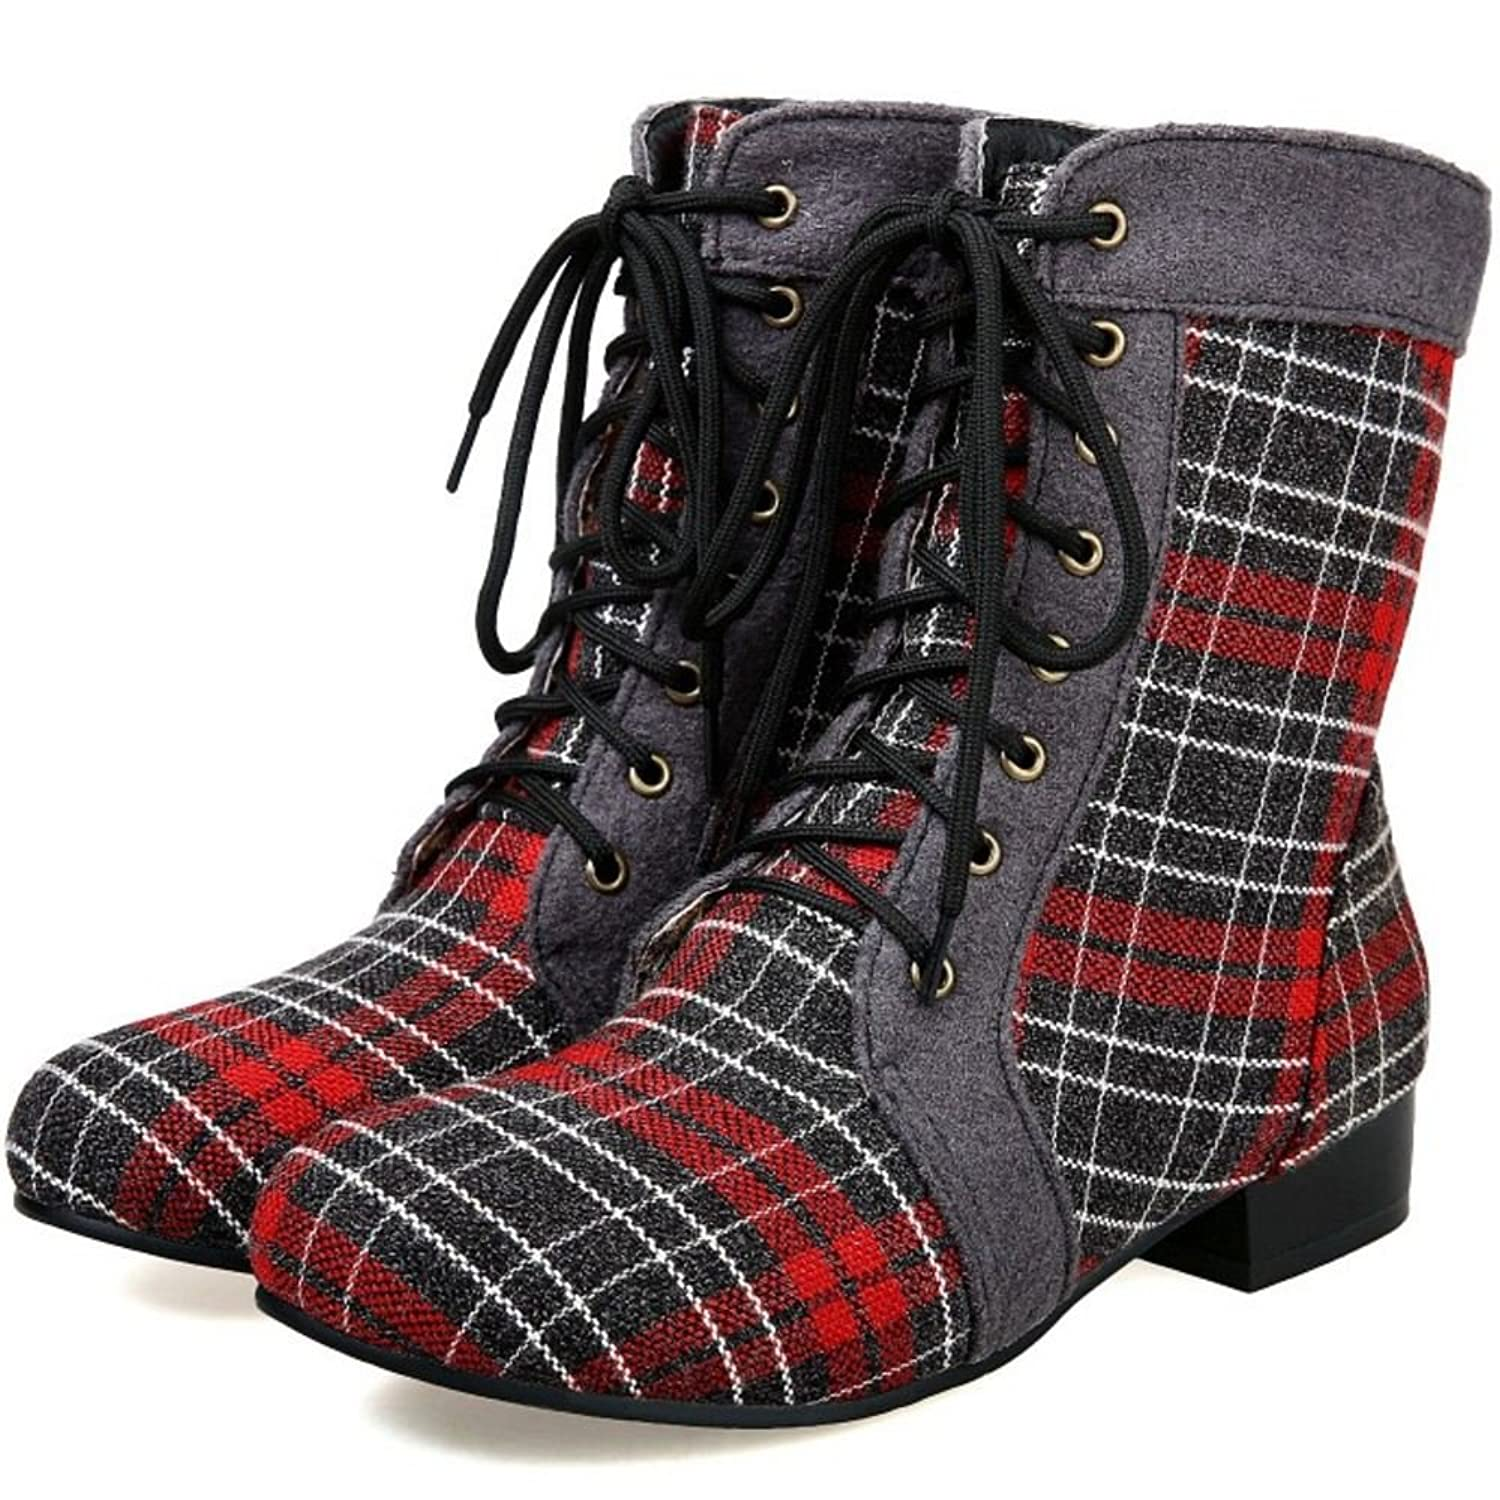 Vintage Style Boots TAOFFEN Women Low Heel Round Toe Classic Lace Up Plaid Ankle Boots $28.99 AT vintagedancer.com